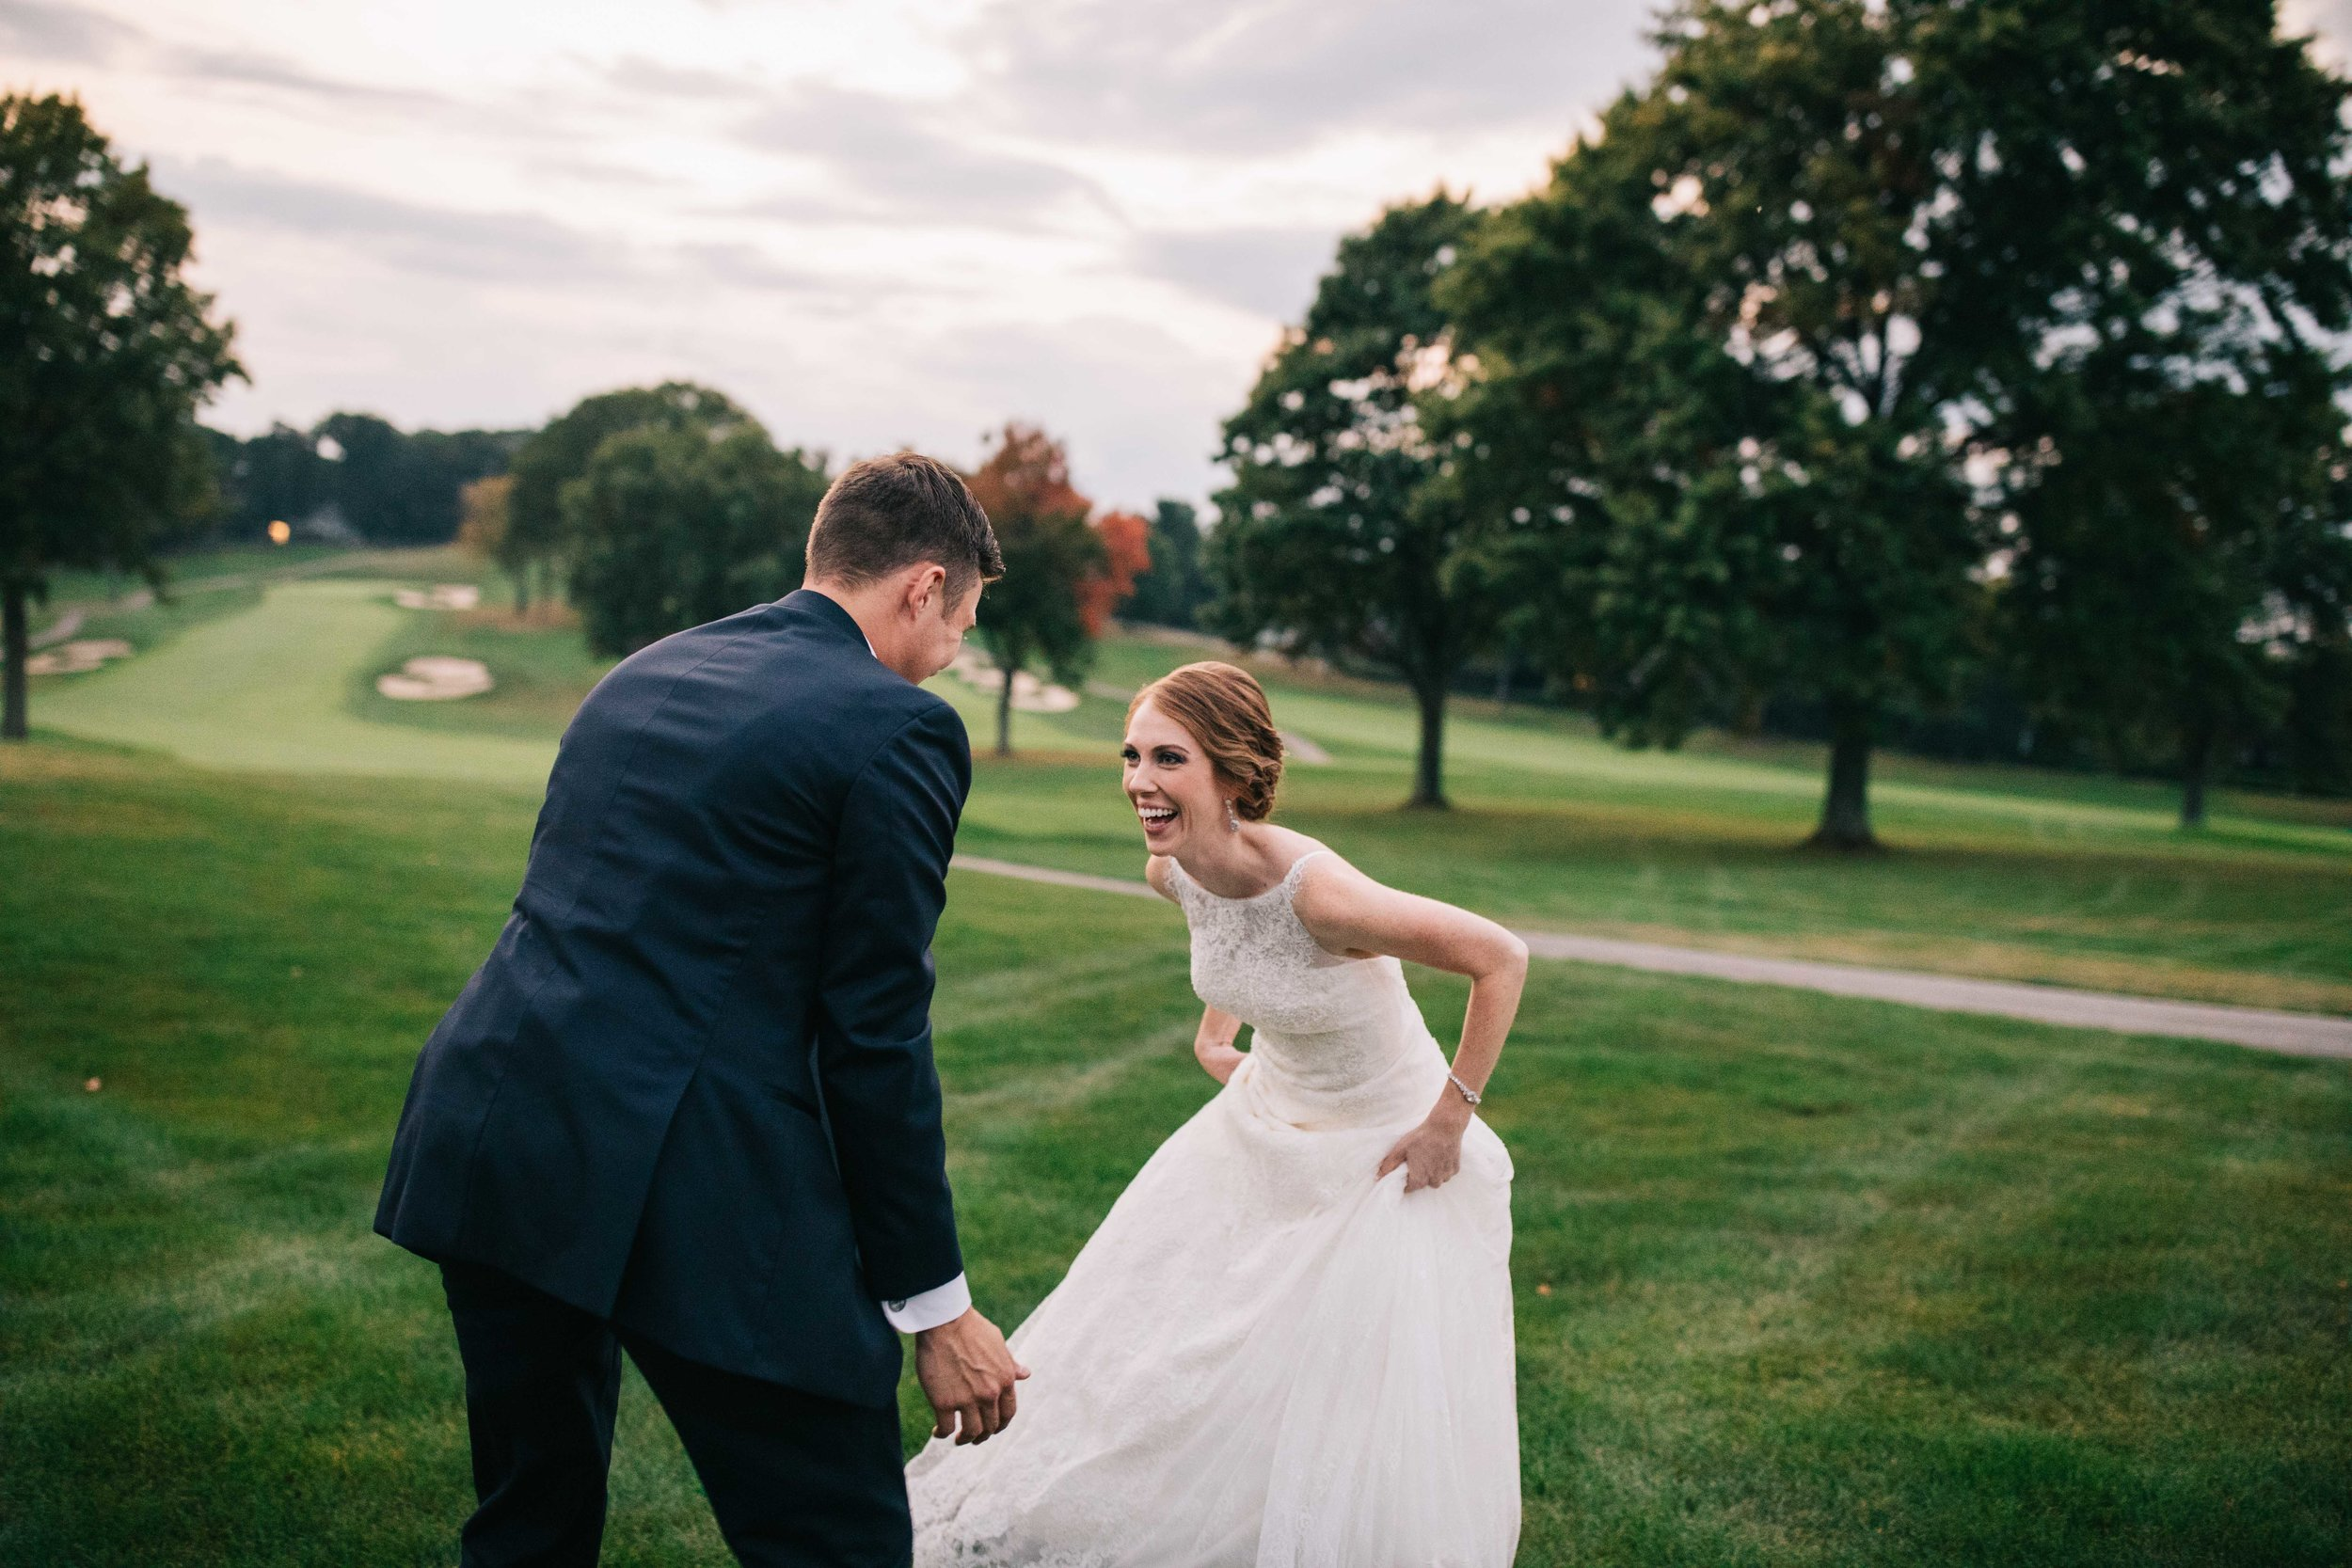 Sewickley Heights Golf Club Wedding - Ahsley & Ethan-444.jpg